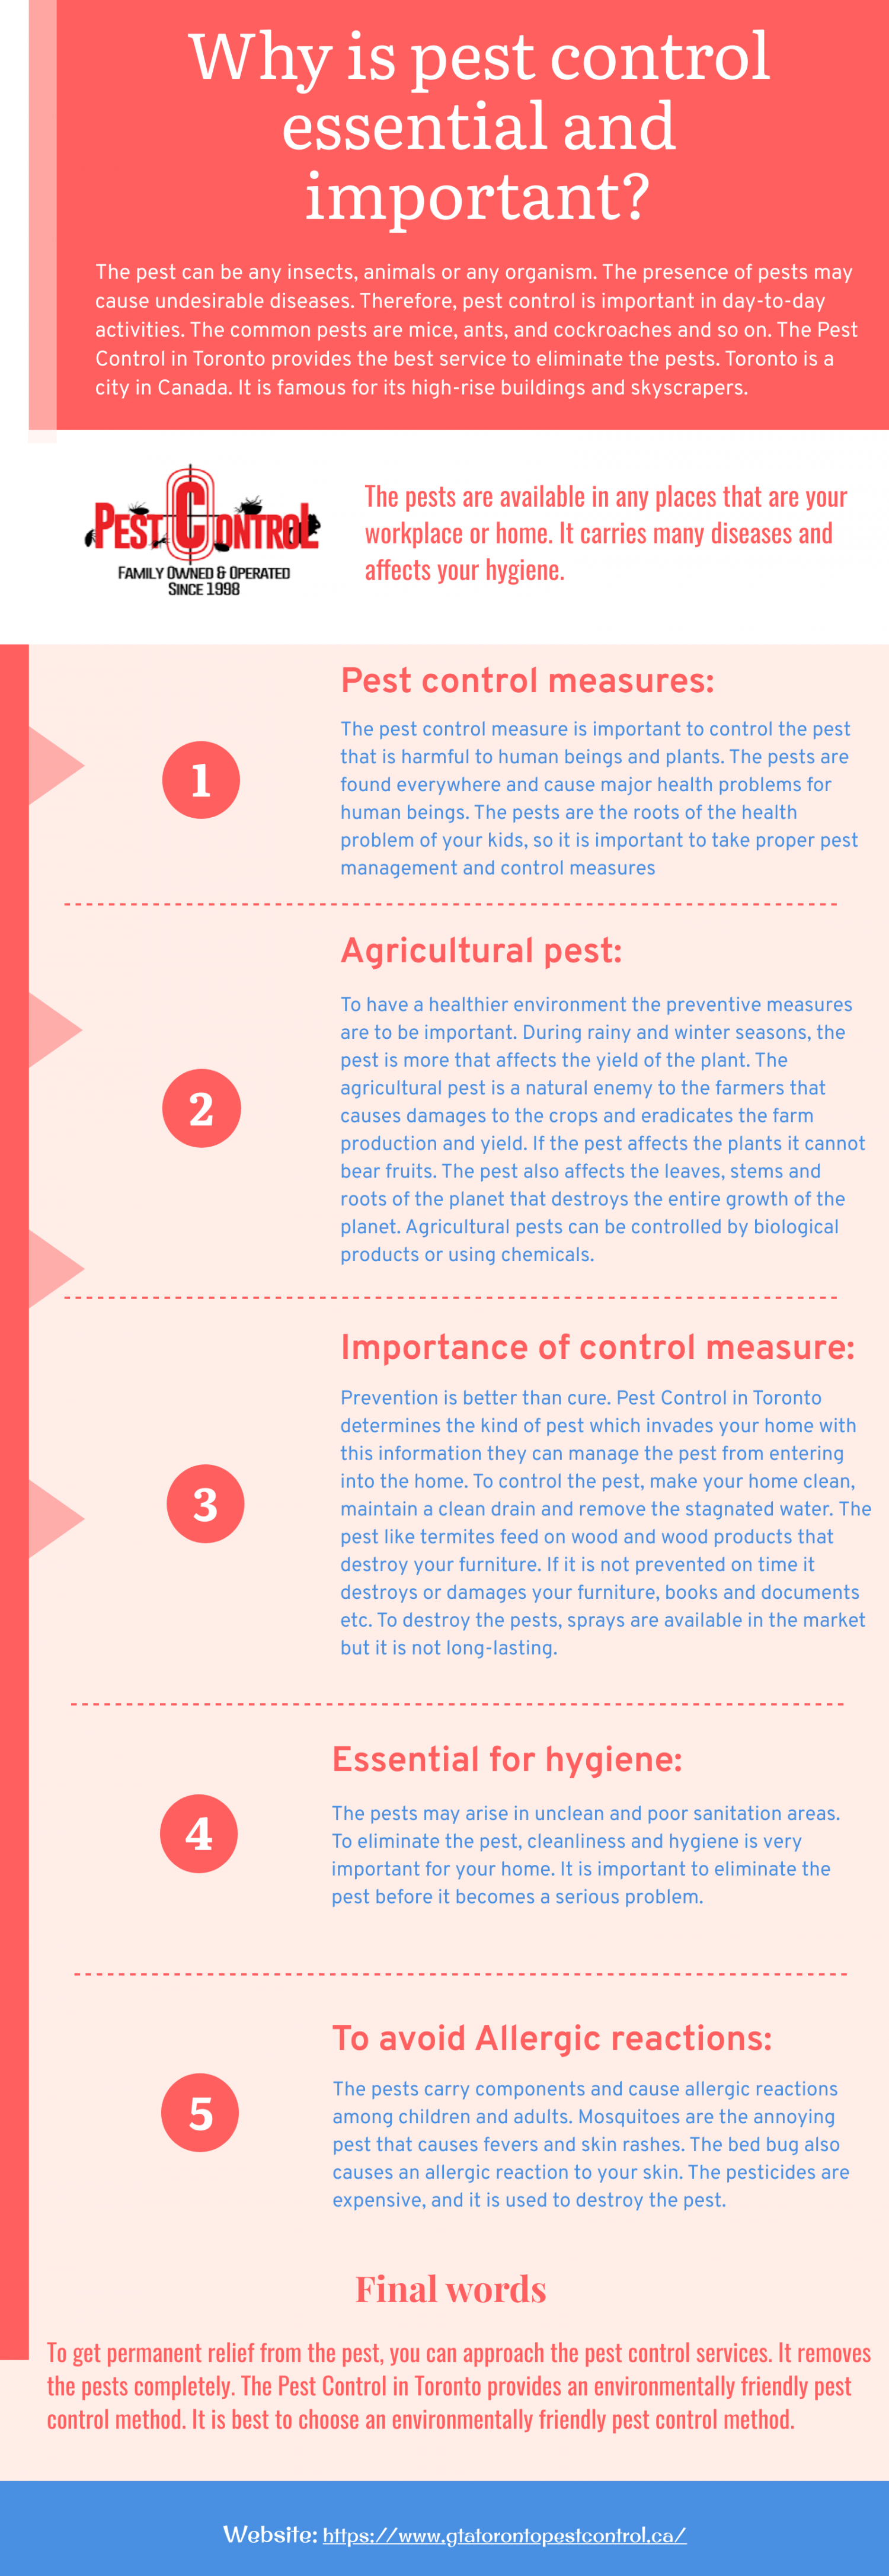 Why is pest control essential and important? Infographic